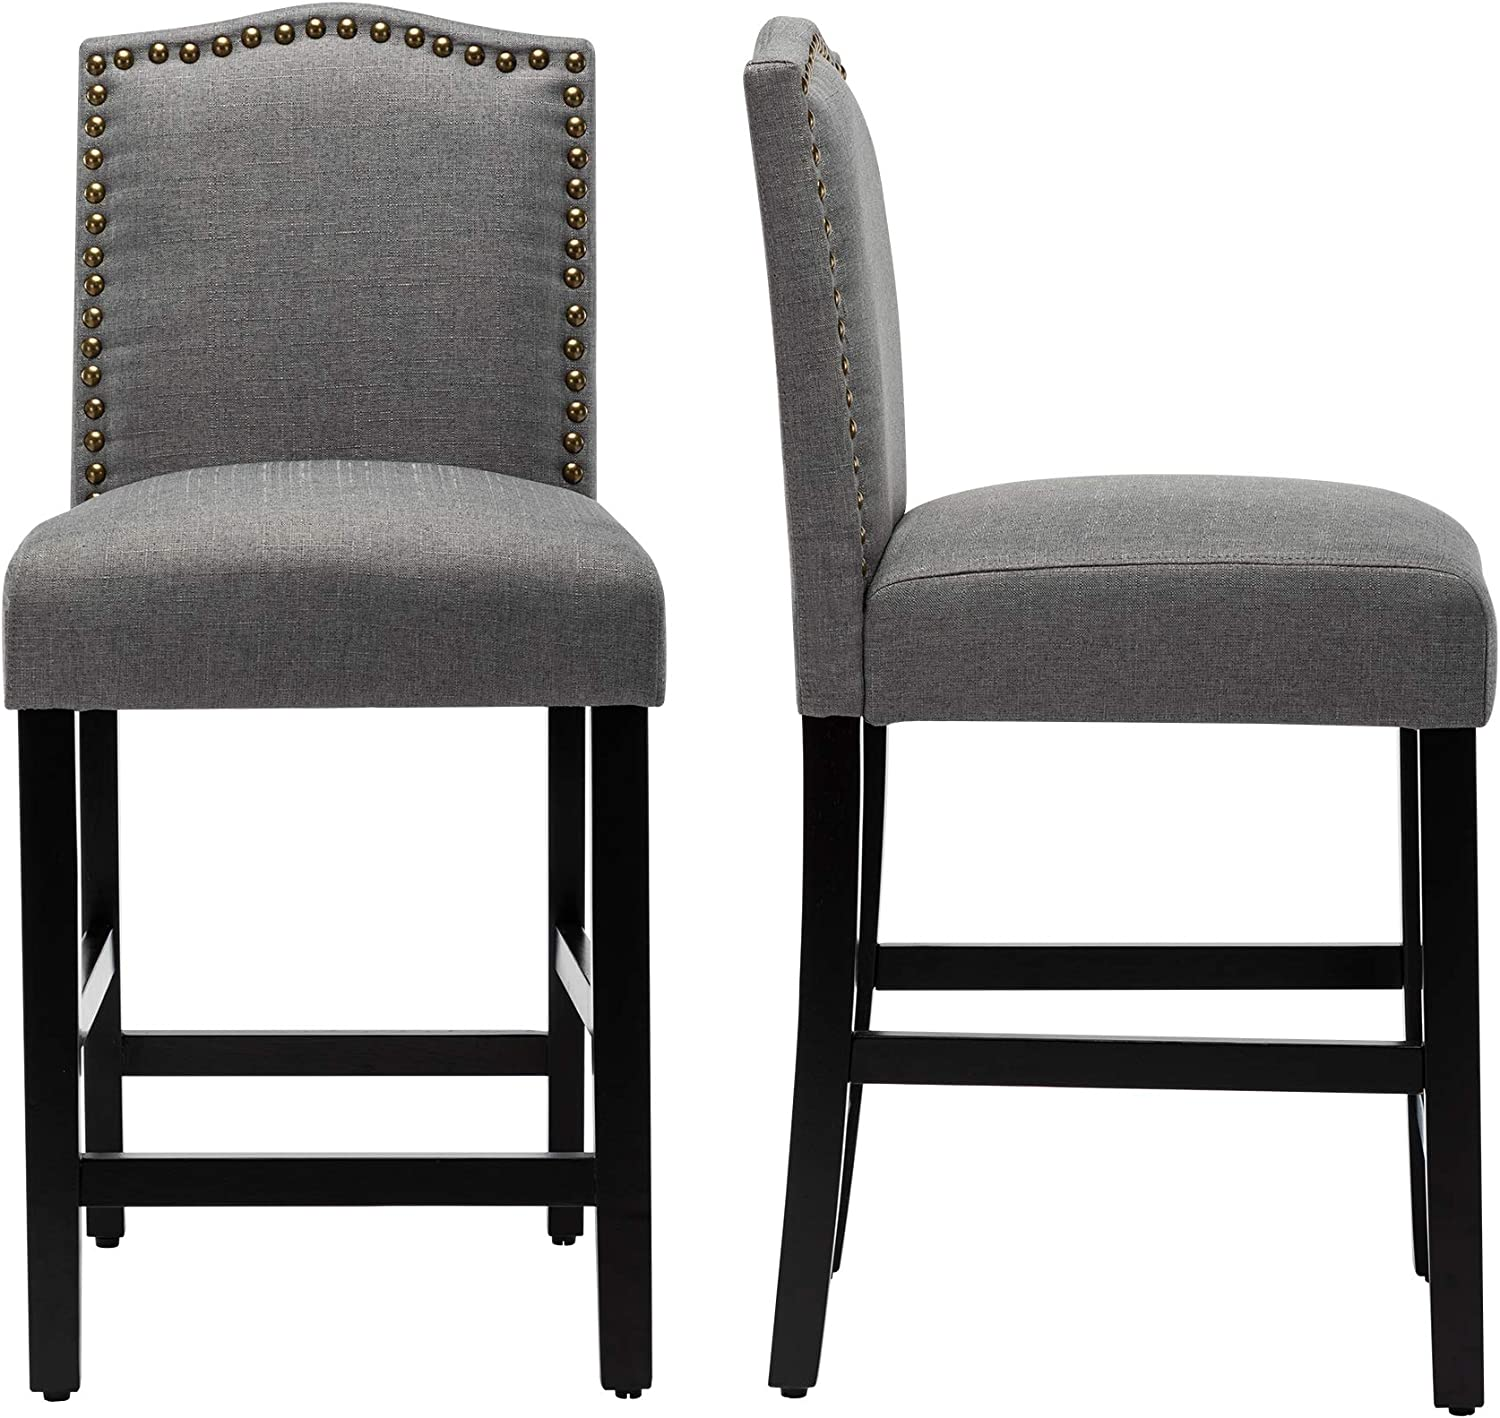 LSSBOUGHT Counter Stools Don't miss Ranking TOP3 the campaign 24 inches Bar S Chairs Upholstered with